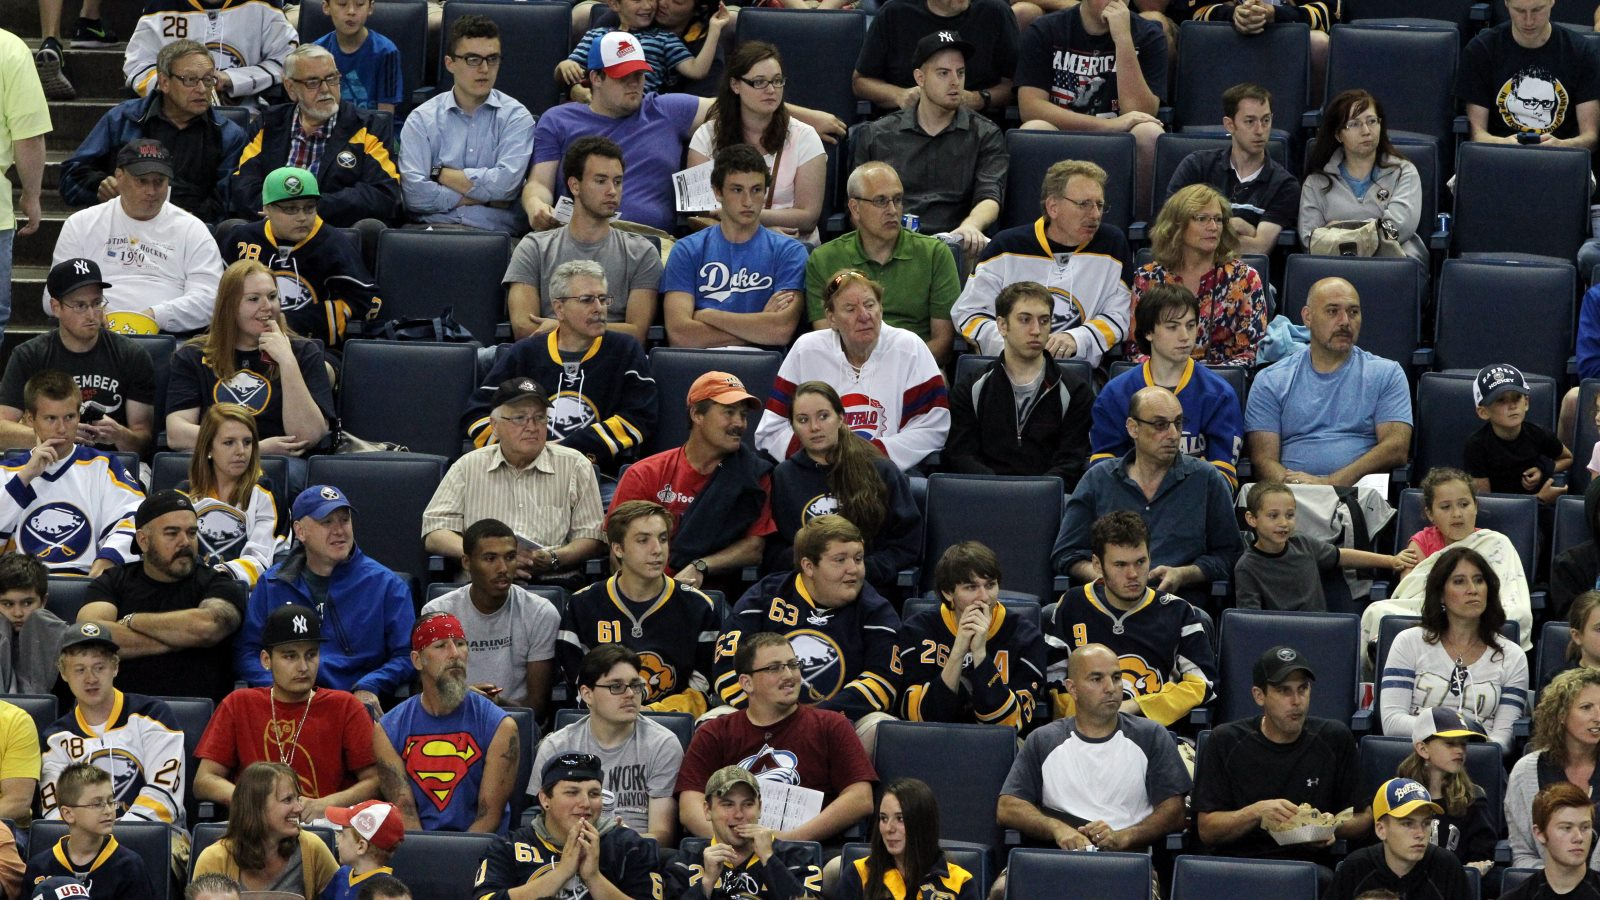 Pricing in the five classifications for Sabres games is based on opponent, day of week and time of year of the game and whether opponents have marquee players. (James P. McCoy/News file photo)